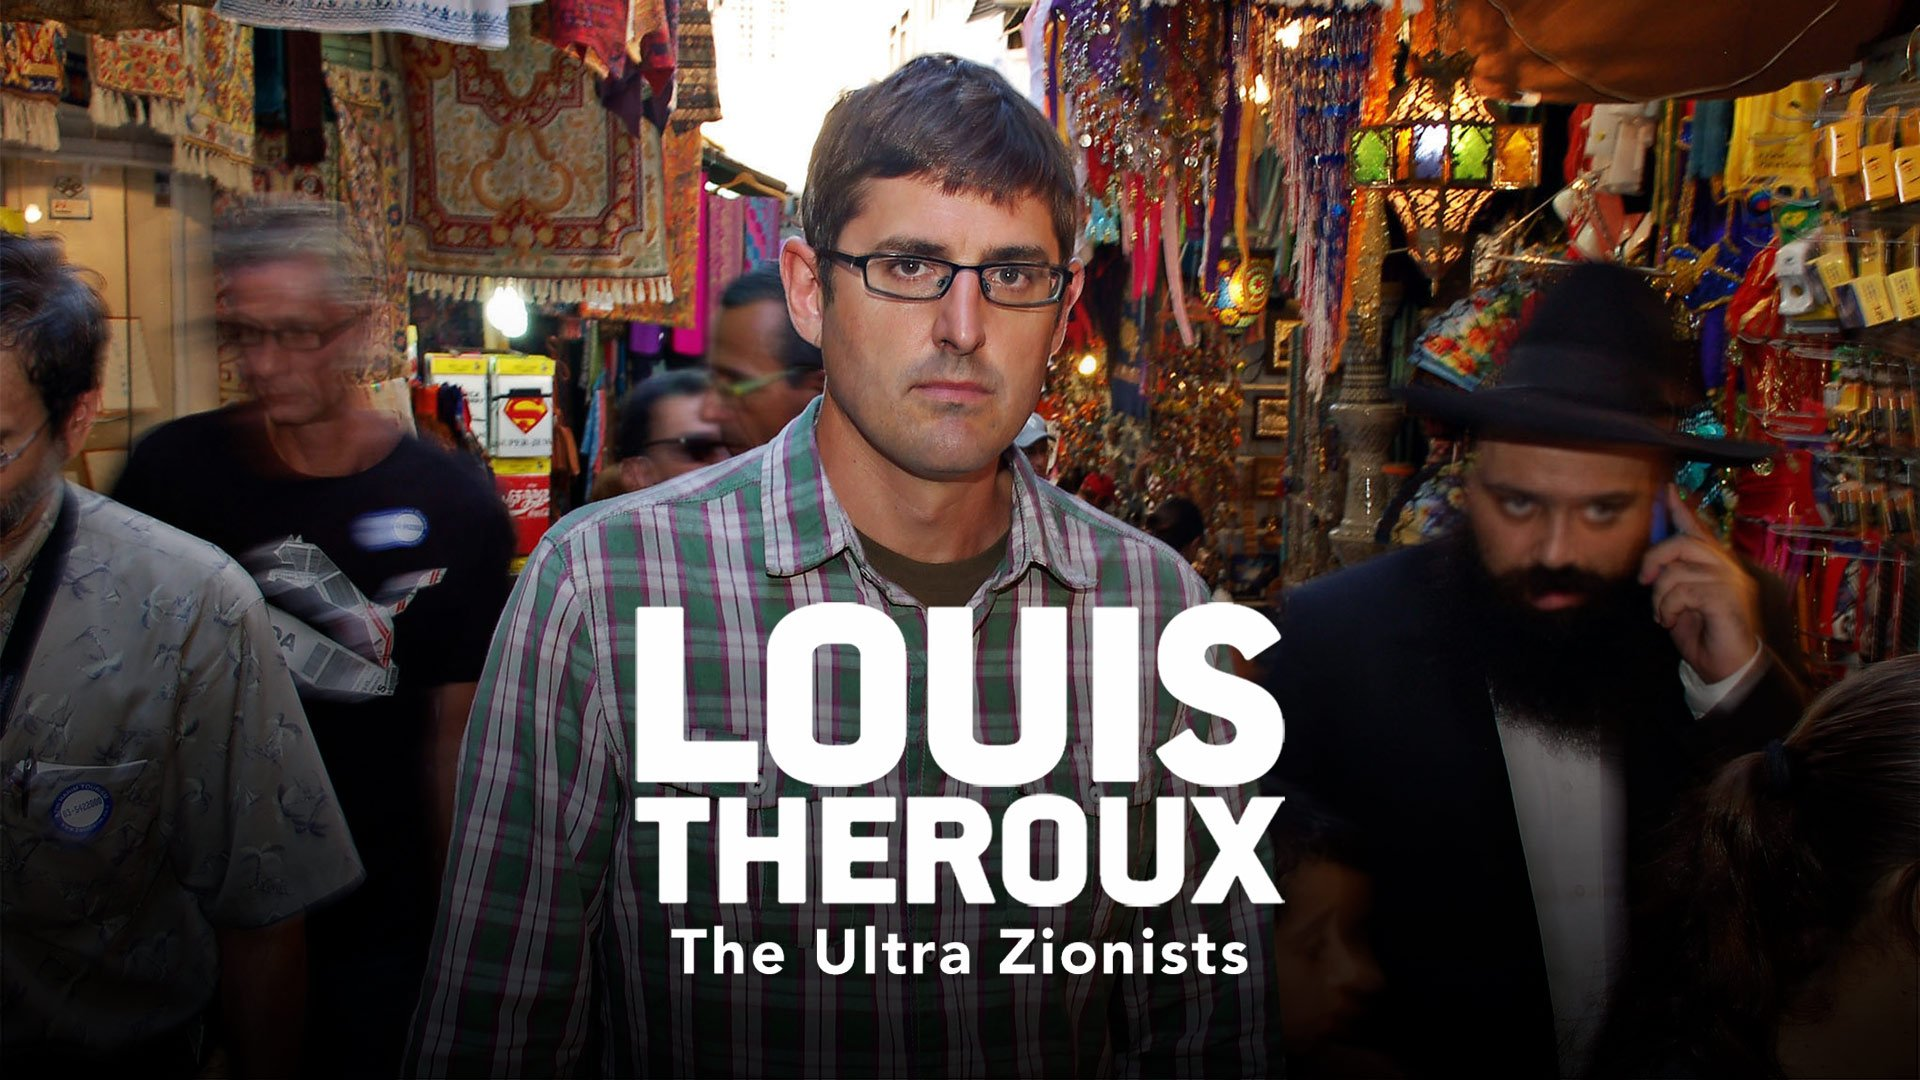 Louis Theroux: The Ultra Zionists on BritBox UK